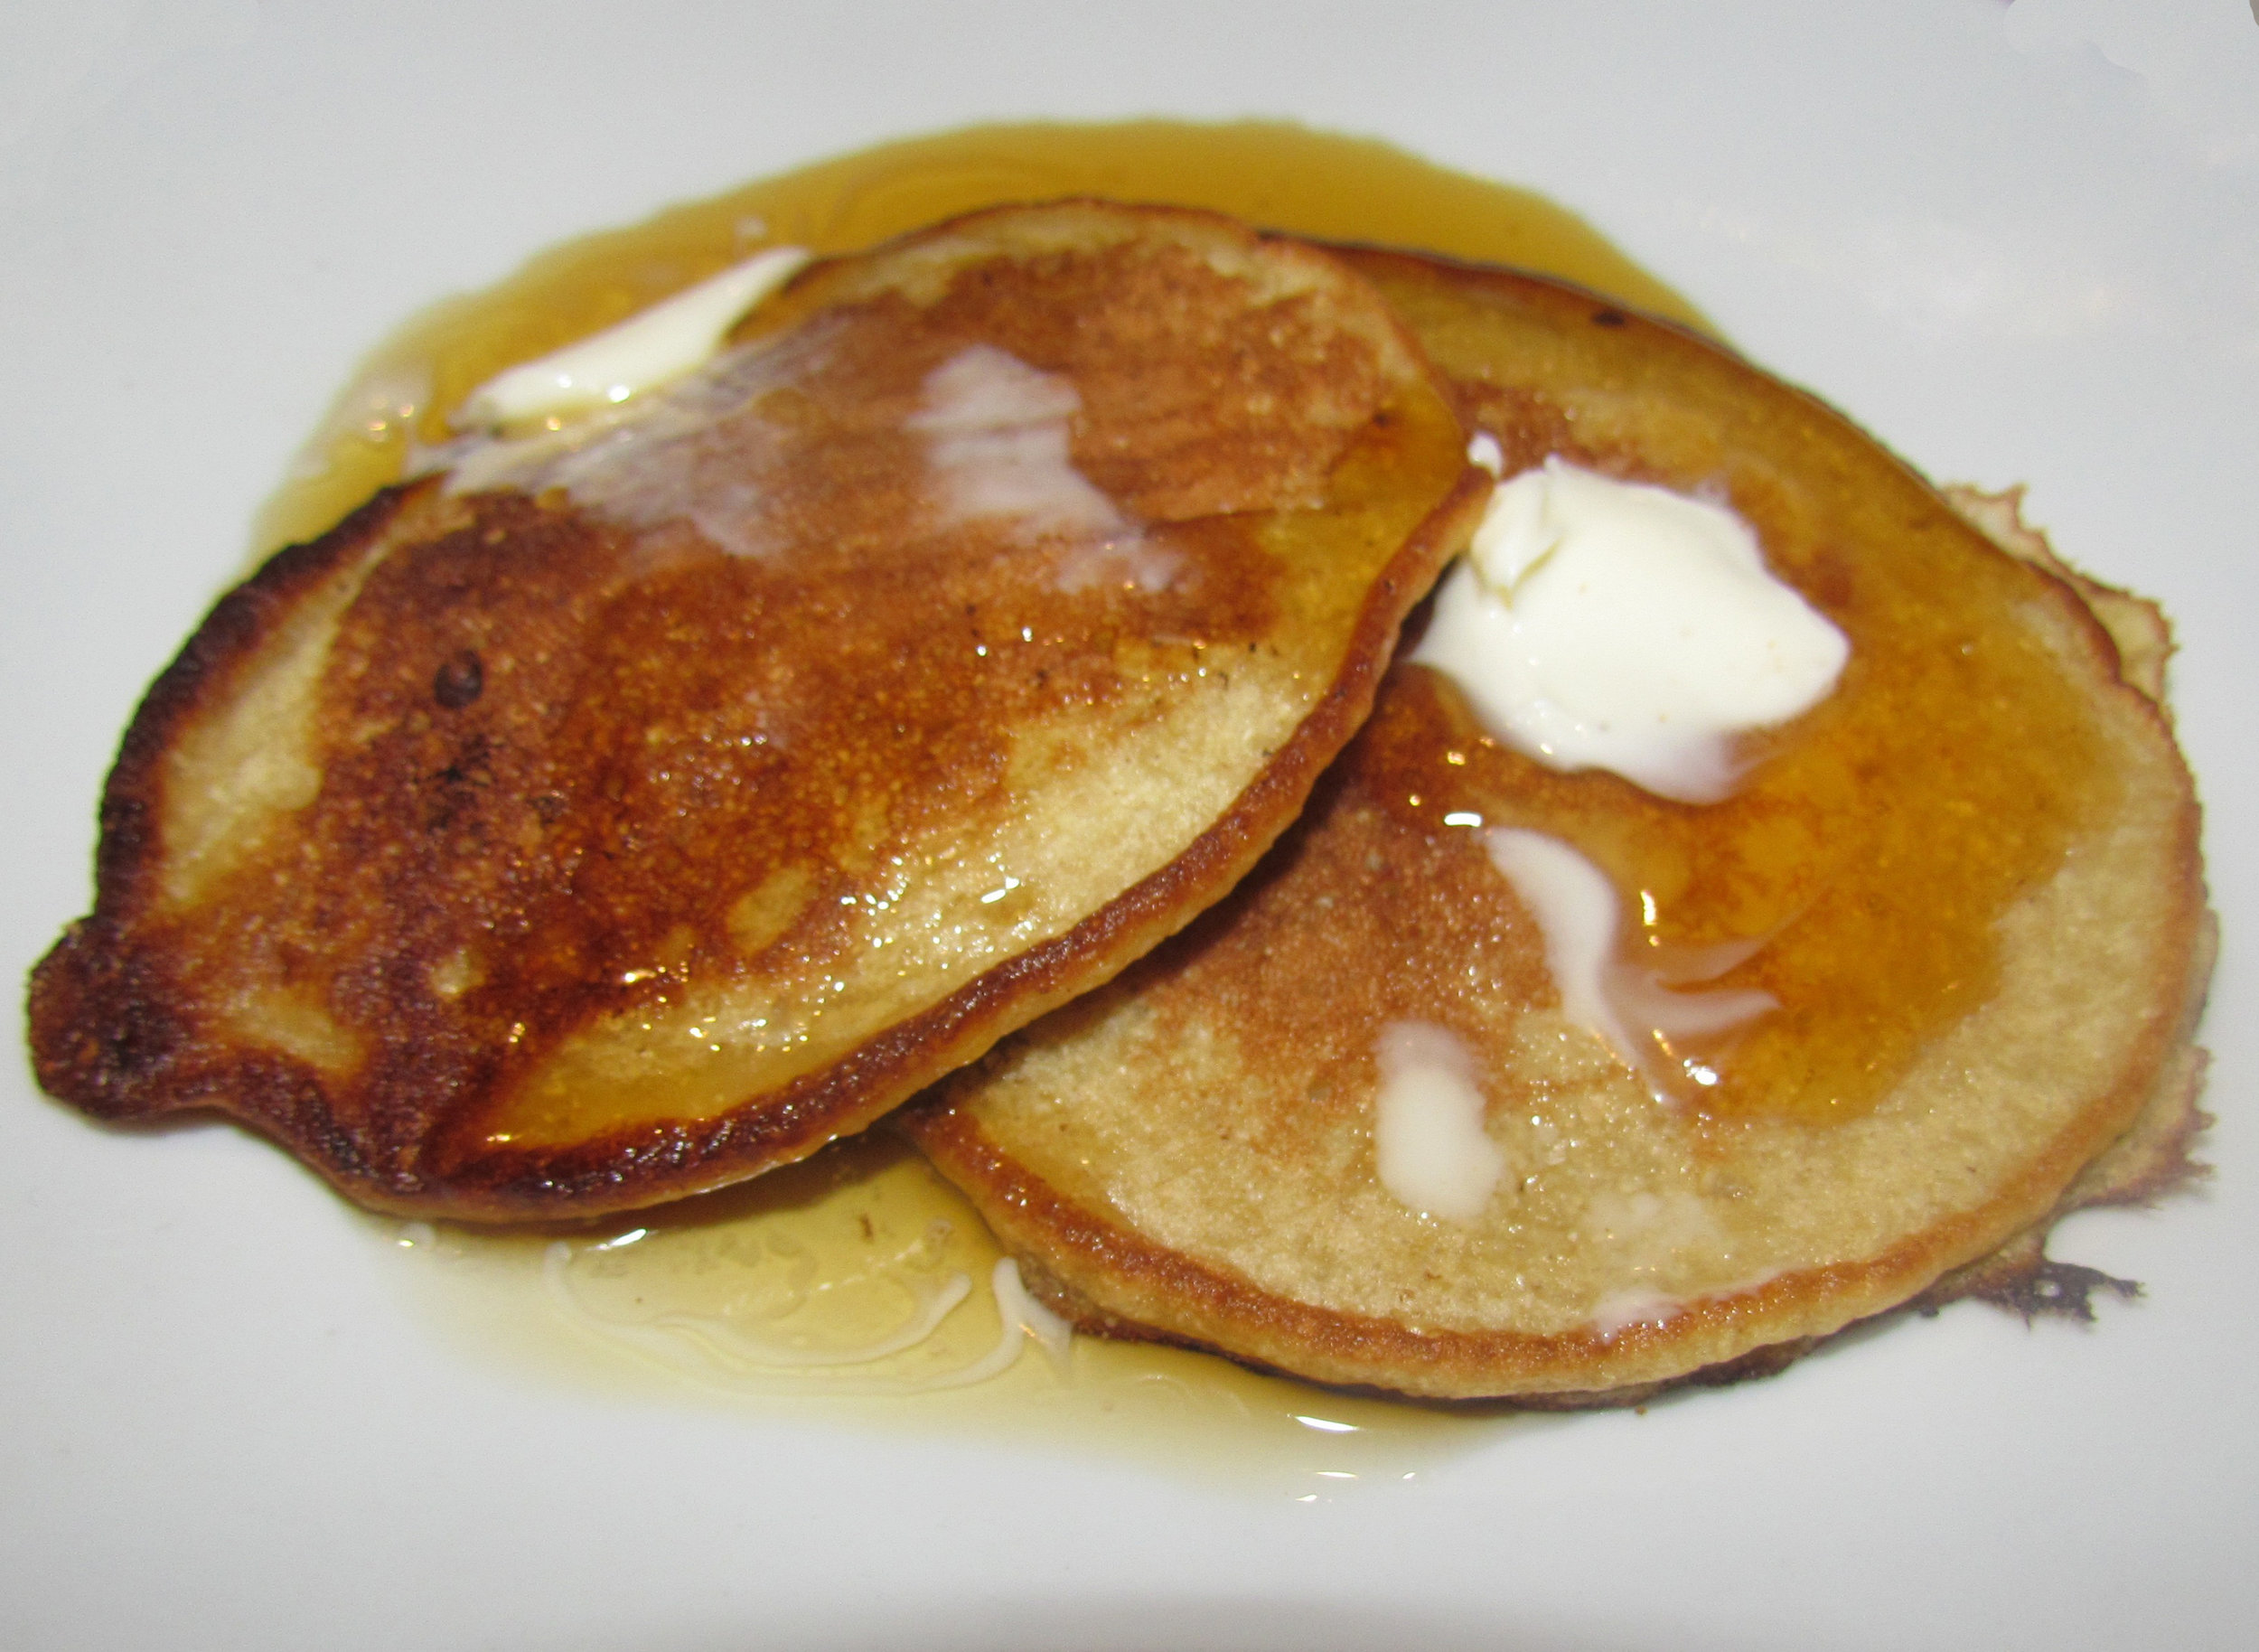 I'm no food photographer. But trust me, these pancakes looked and tasted delish!